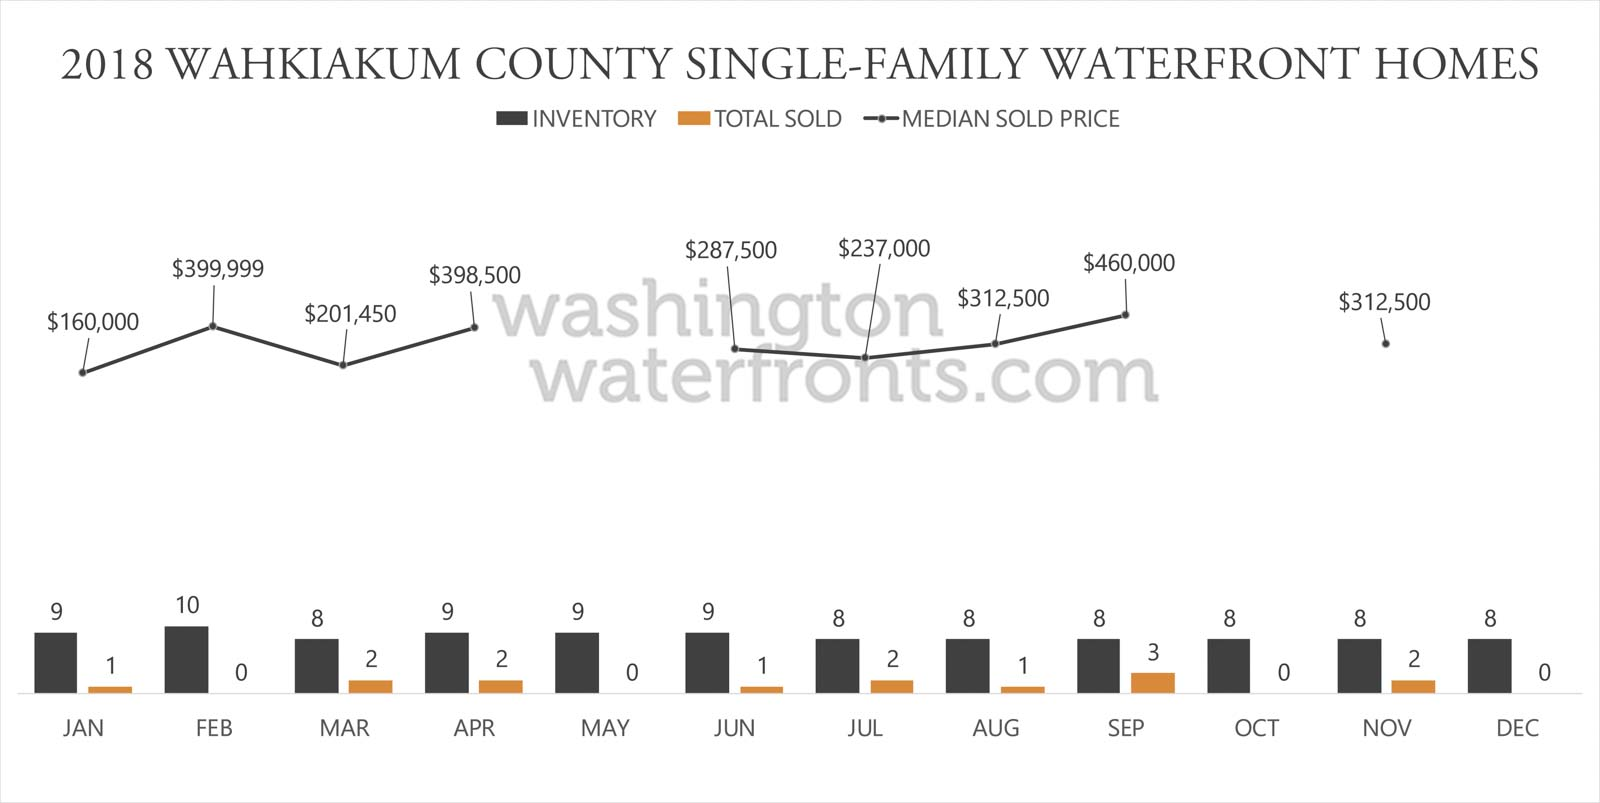 Wahkiakum County Waterfront Inventory